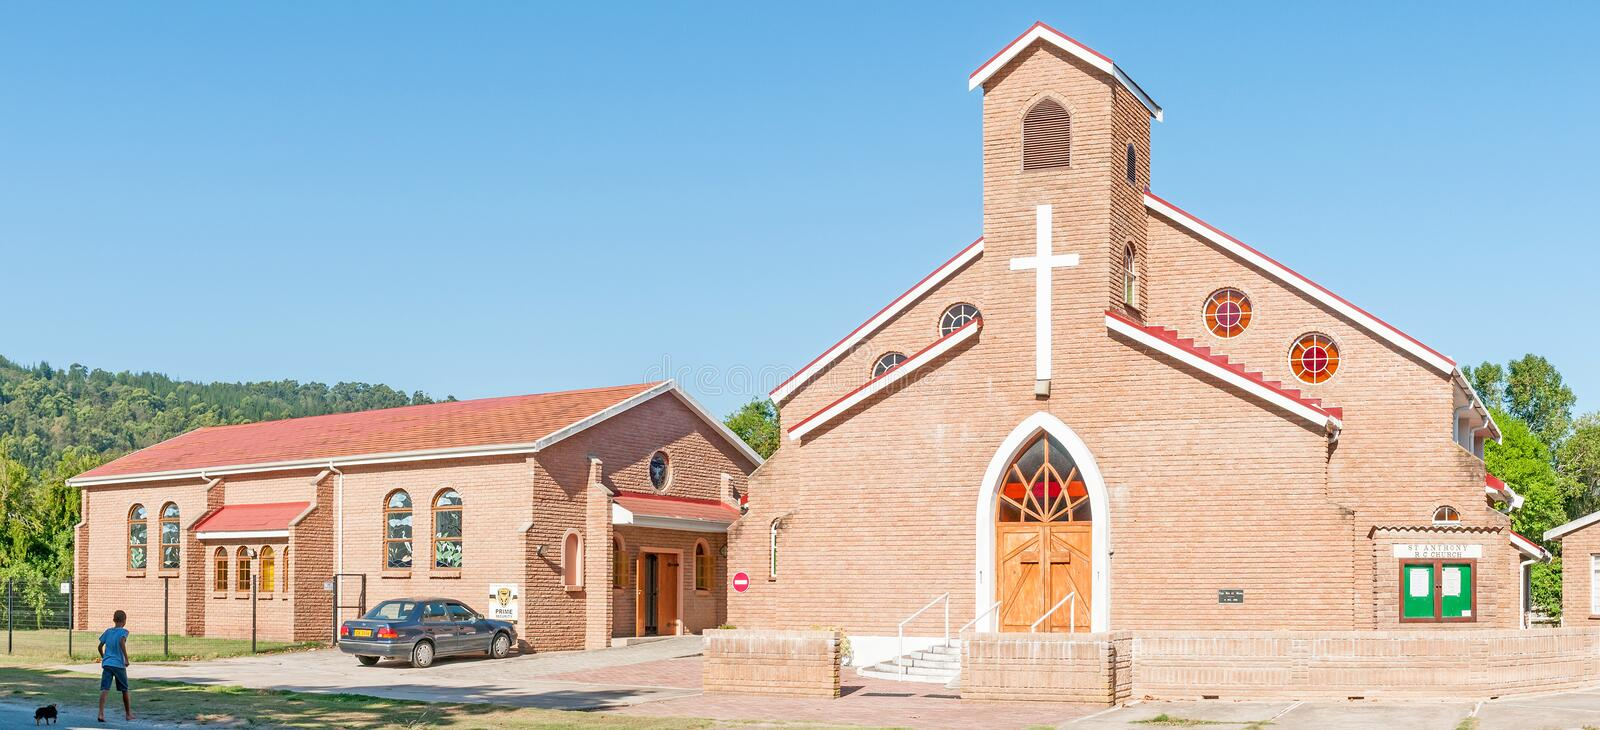 St. Anthony Roman Catholic Church in Sedgefield. SEDGEFIELD, SOUTH AFRICA - MARCH 4, 2016: Stitched panorama of the St. Anthony Roman Catholic Church in royalty free stock images